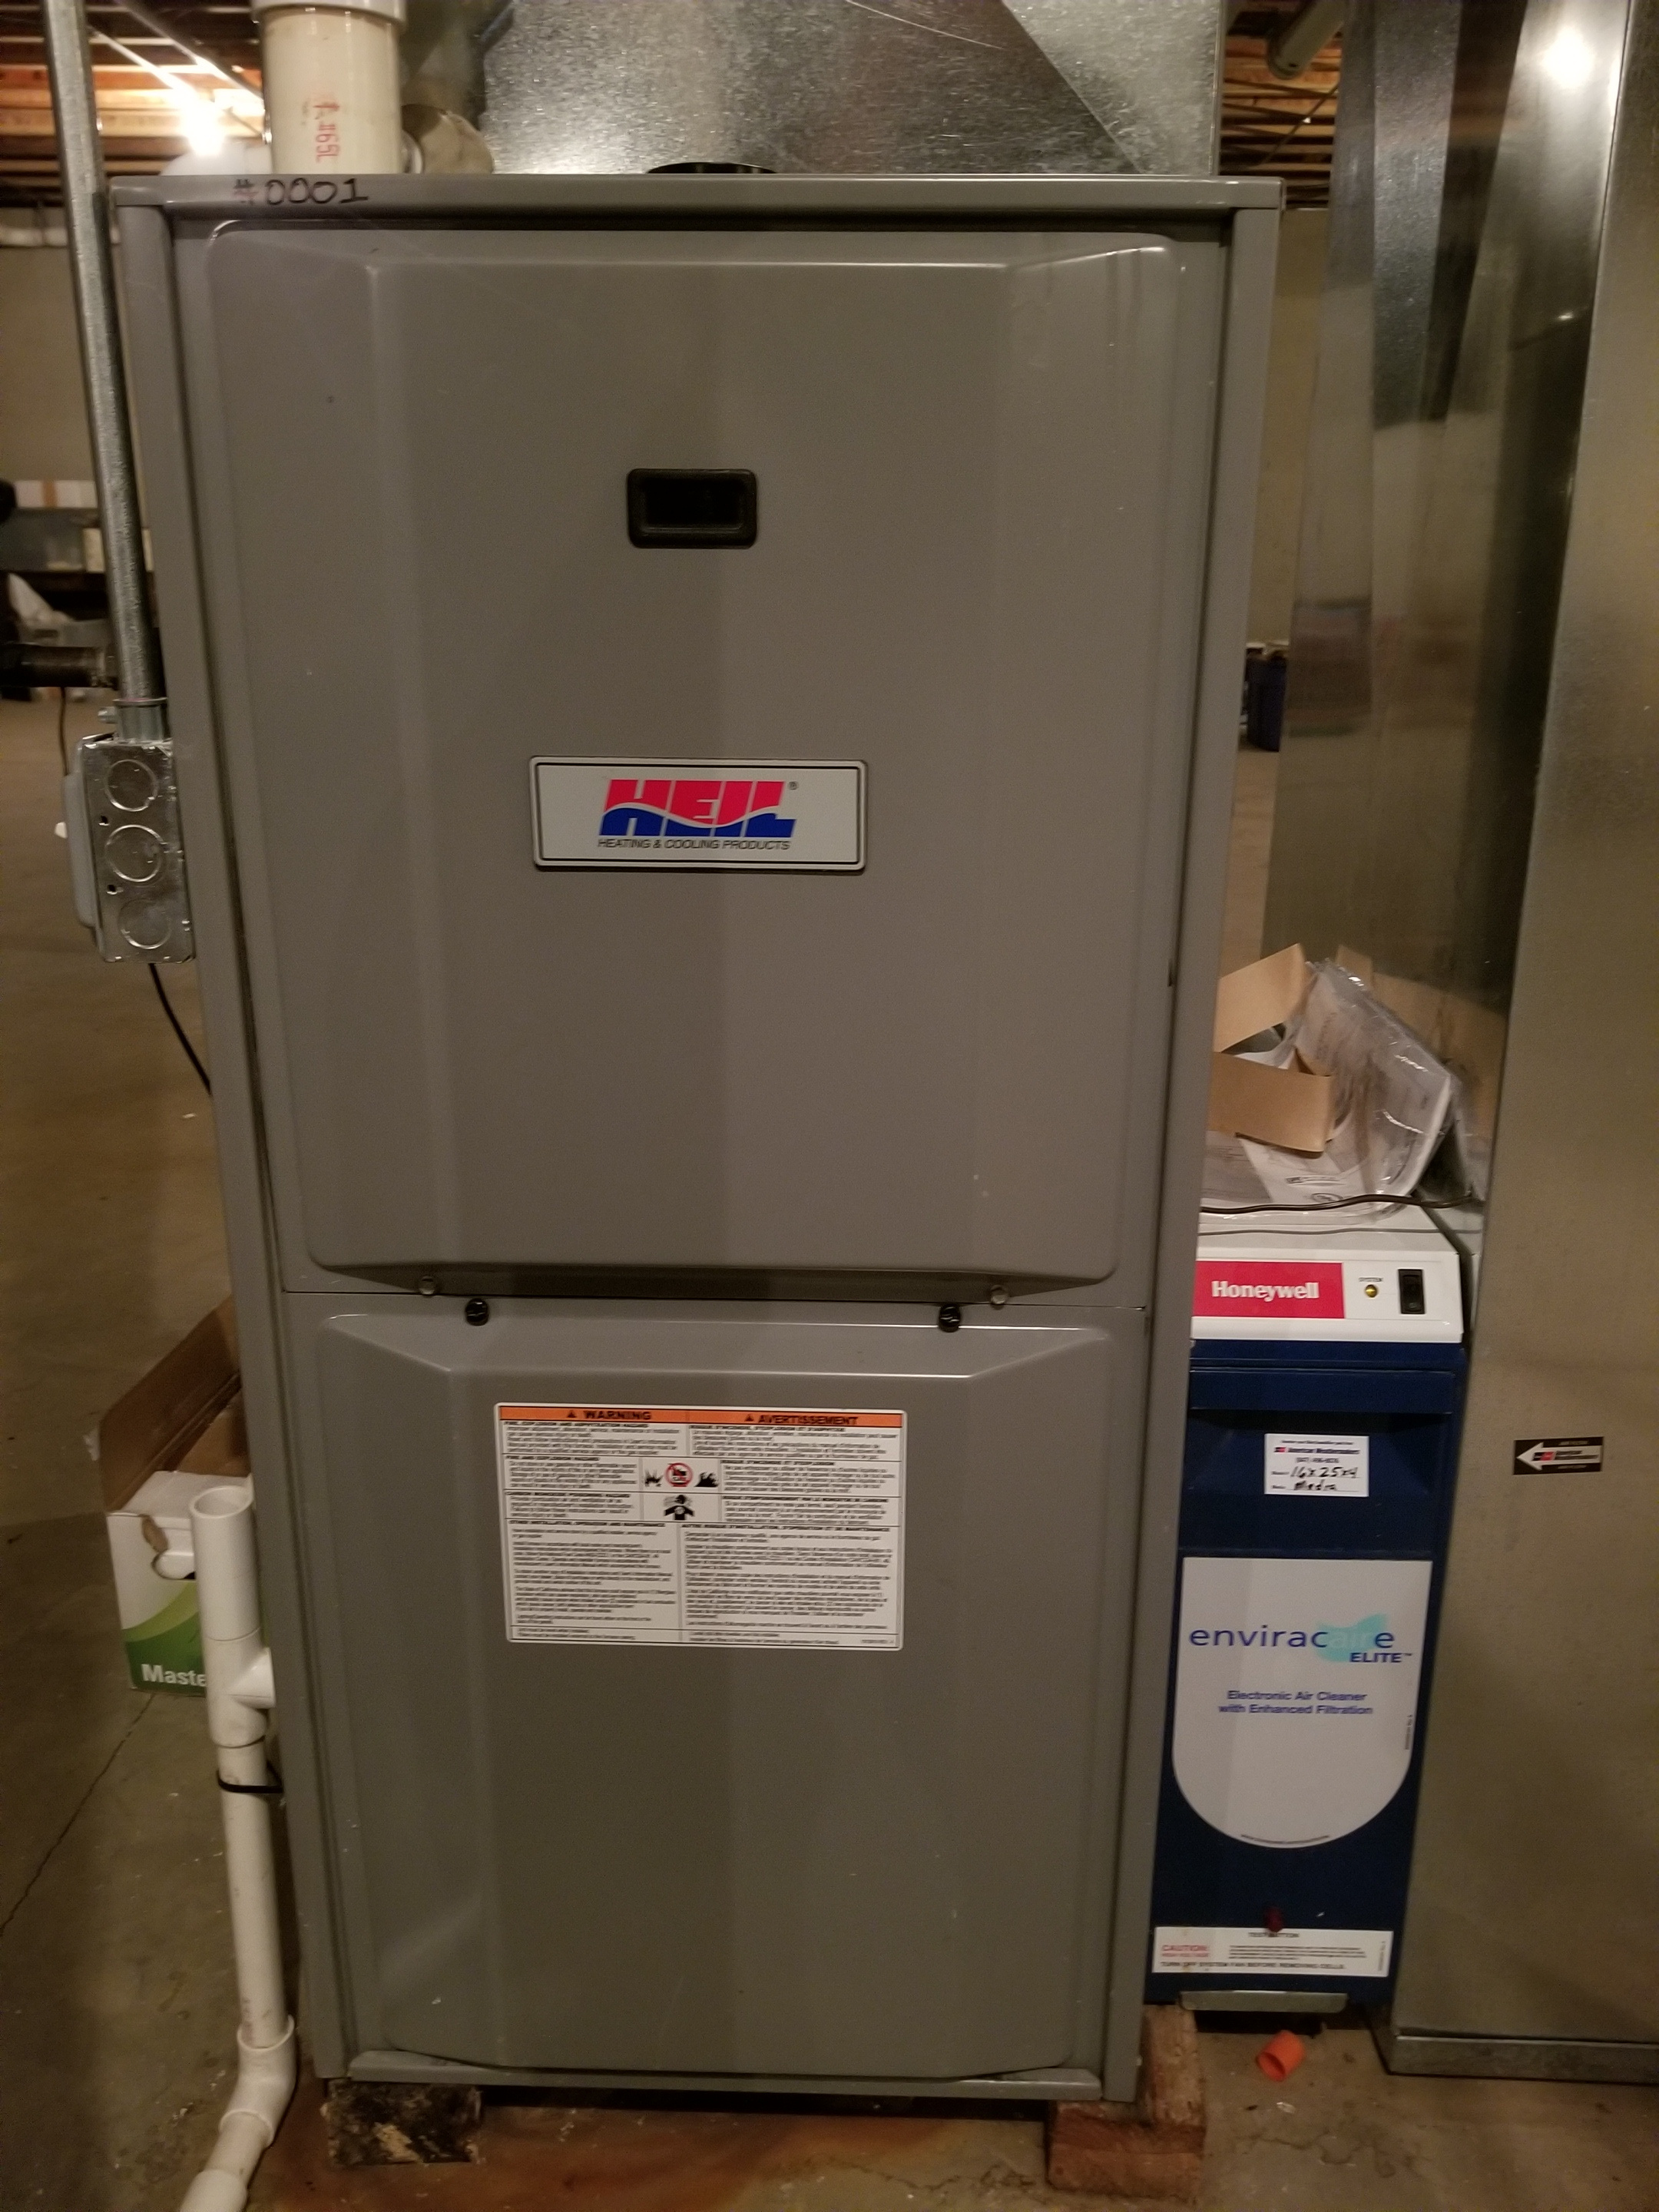 Repaired one Heil furnace and we are installing a Brand new High Efficiency Rheem furnace to increase the reliability and comfort of the home.